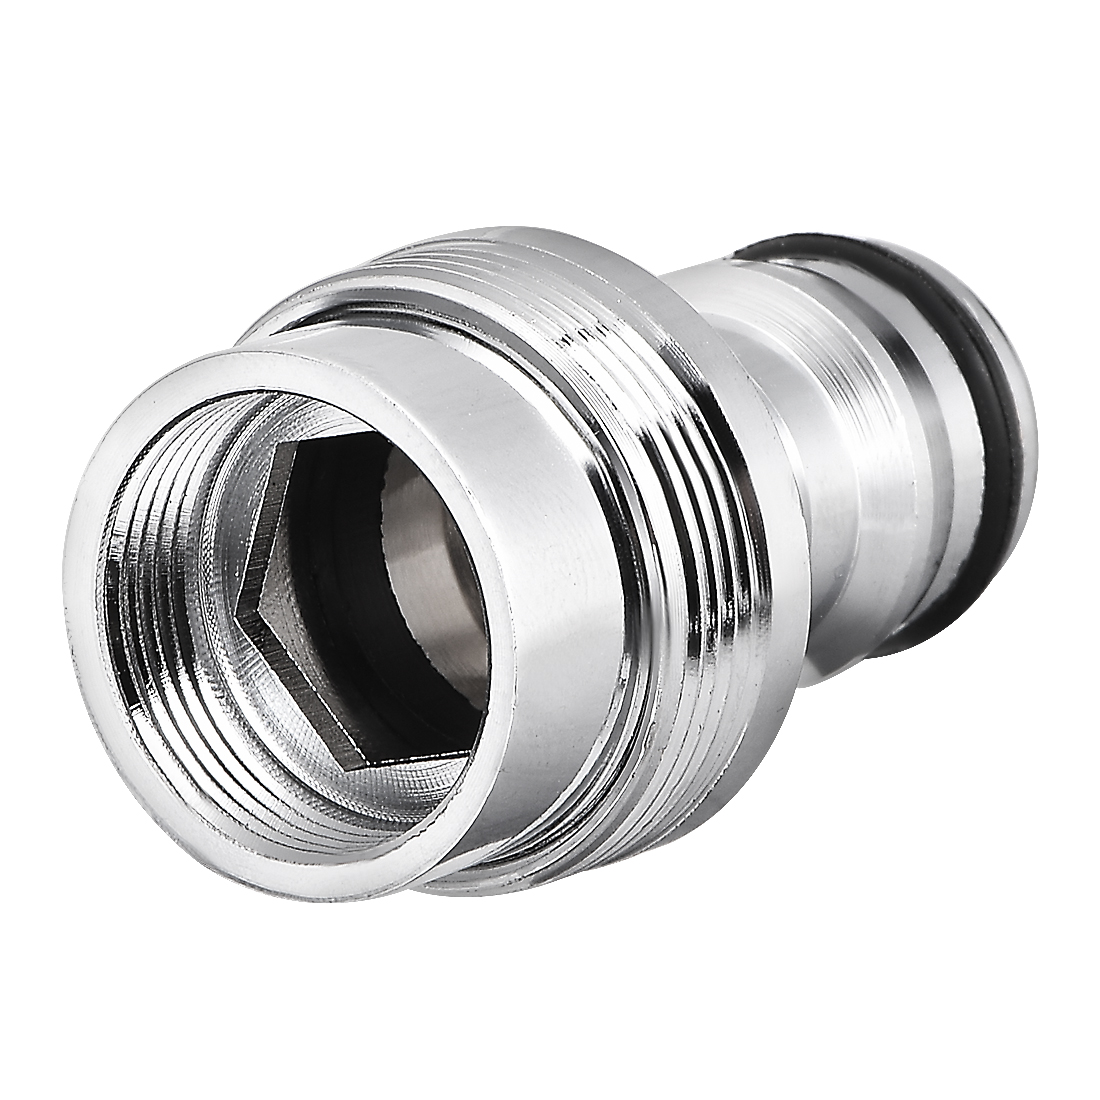 Brass Garden Hose Quick Connector Faucet Nozzle Adapter 18mm Female Thread